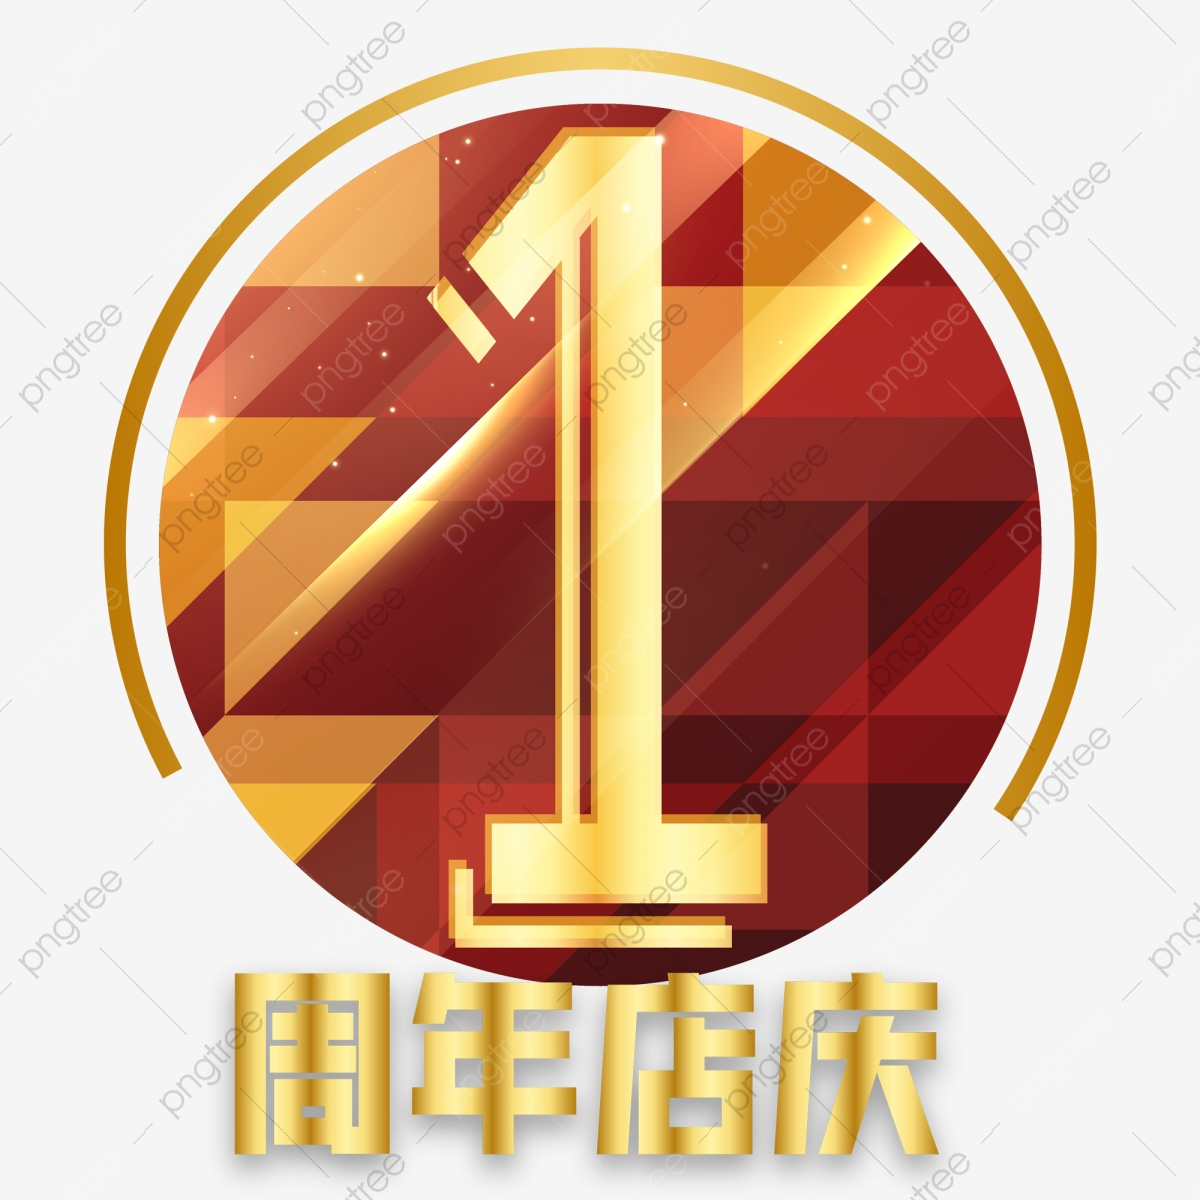 1st anniversary png images vector and psd files free download on pngtree https pngtree com freepng red gold 1st anniversary celebration 5400805 html